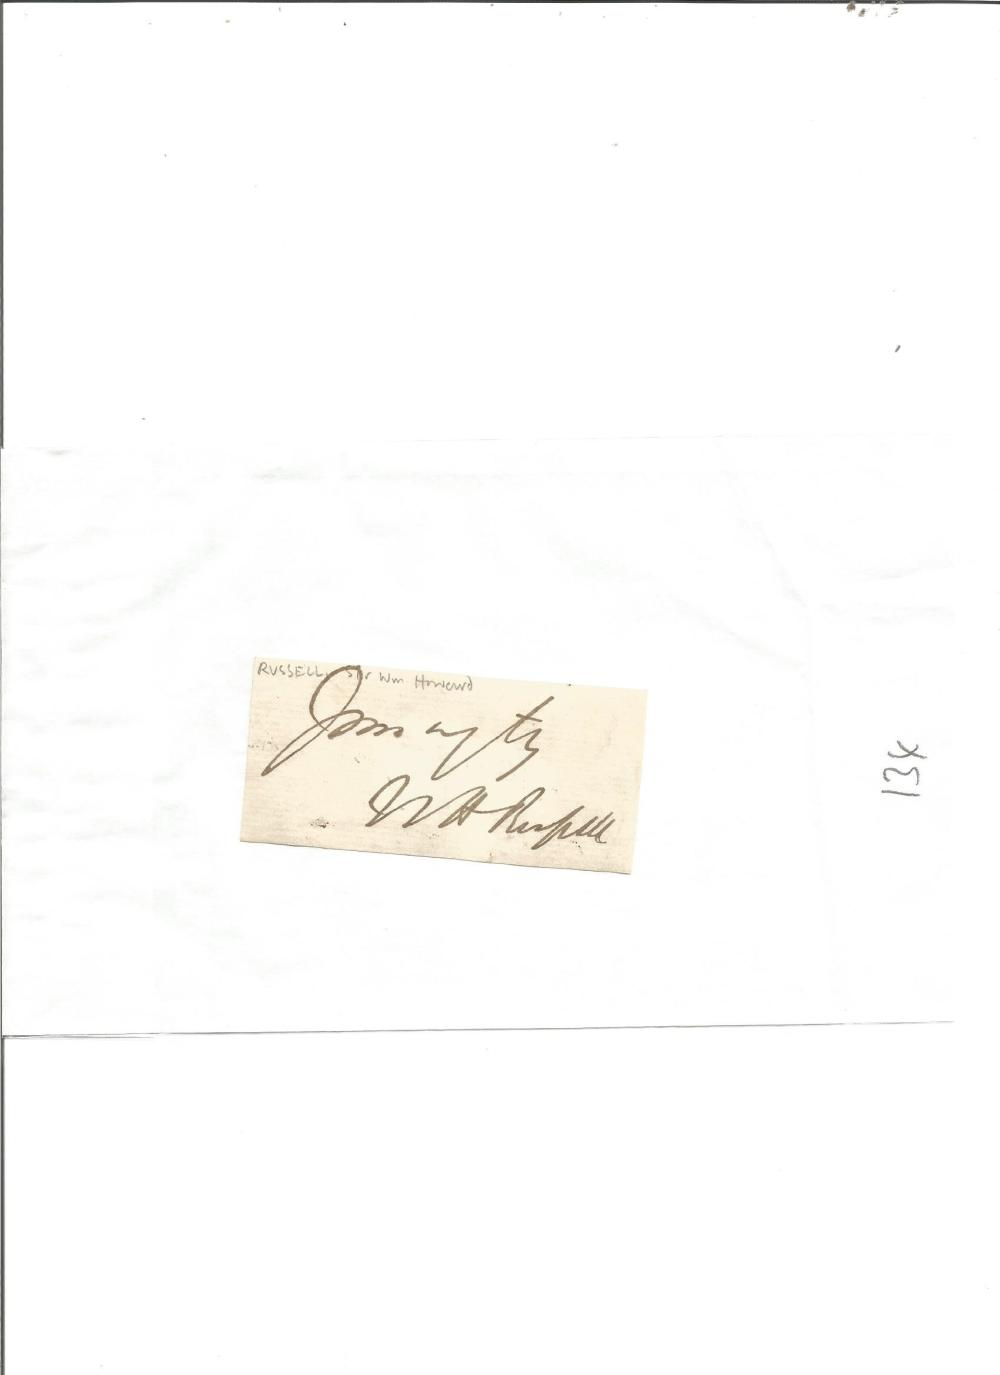 Sir William Howard Russell small signature clipping. He was an Irish reporter with The Times, and is